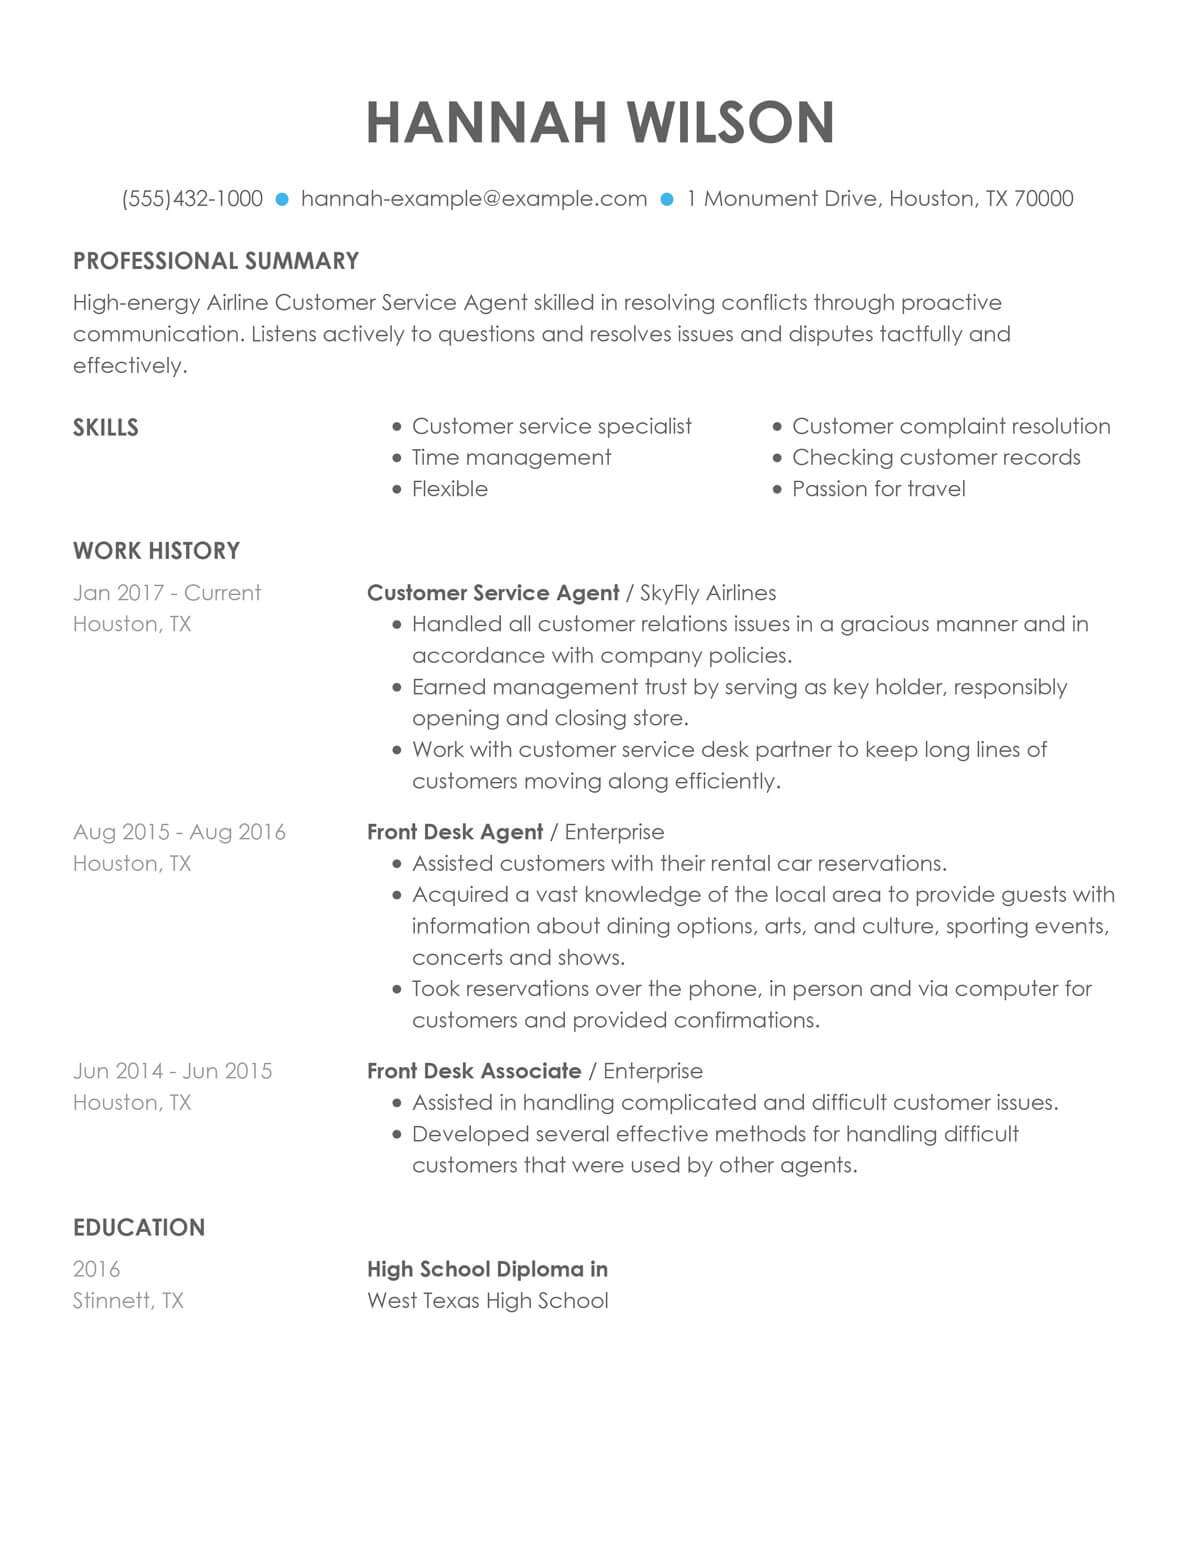 customize our customer representative resume example service overview airline agent Resume Customer Service Resume Overview